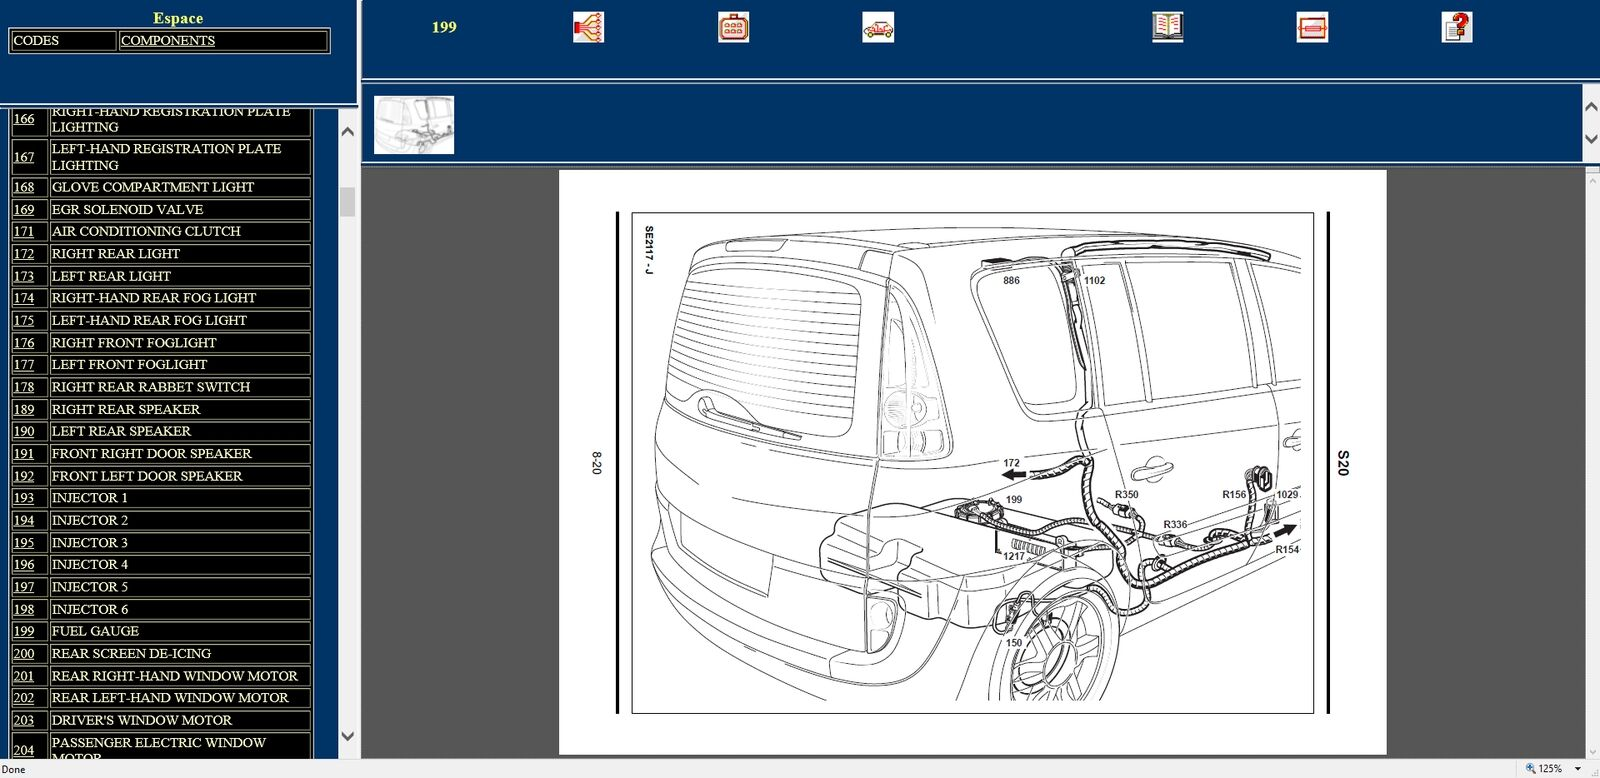 renault visu wiring diagrams for renault can clip sonde platinum collection 163 34 95 picclick uk